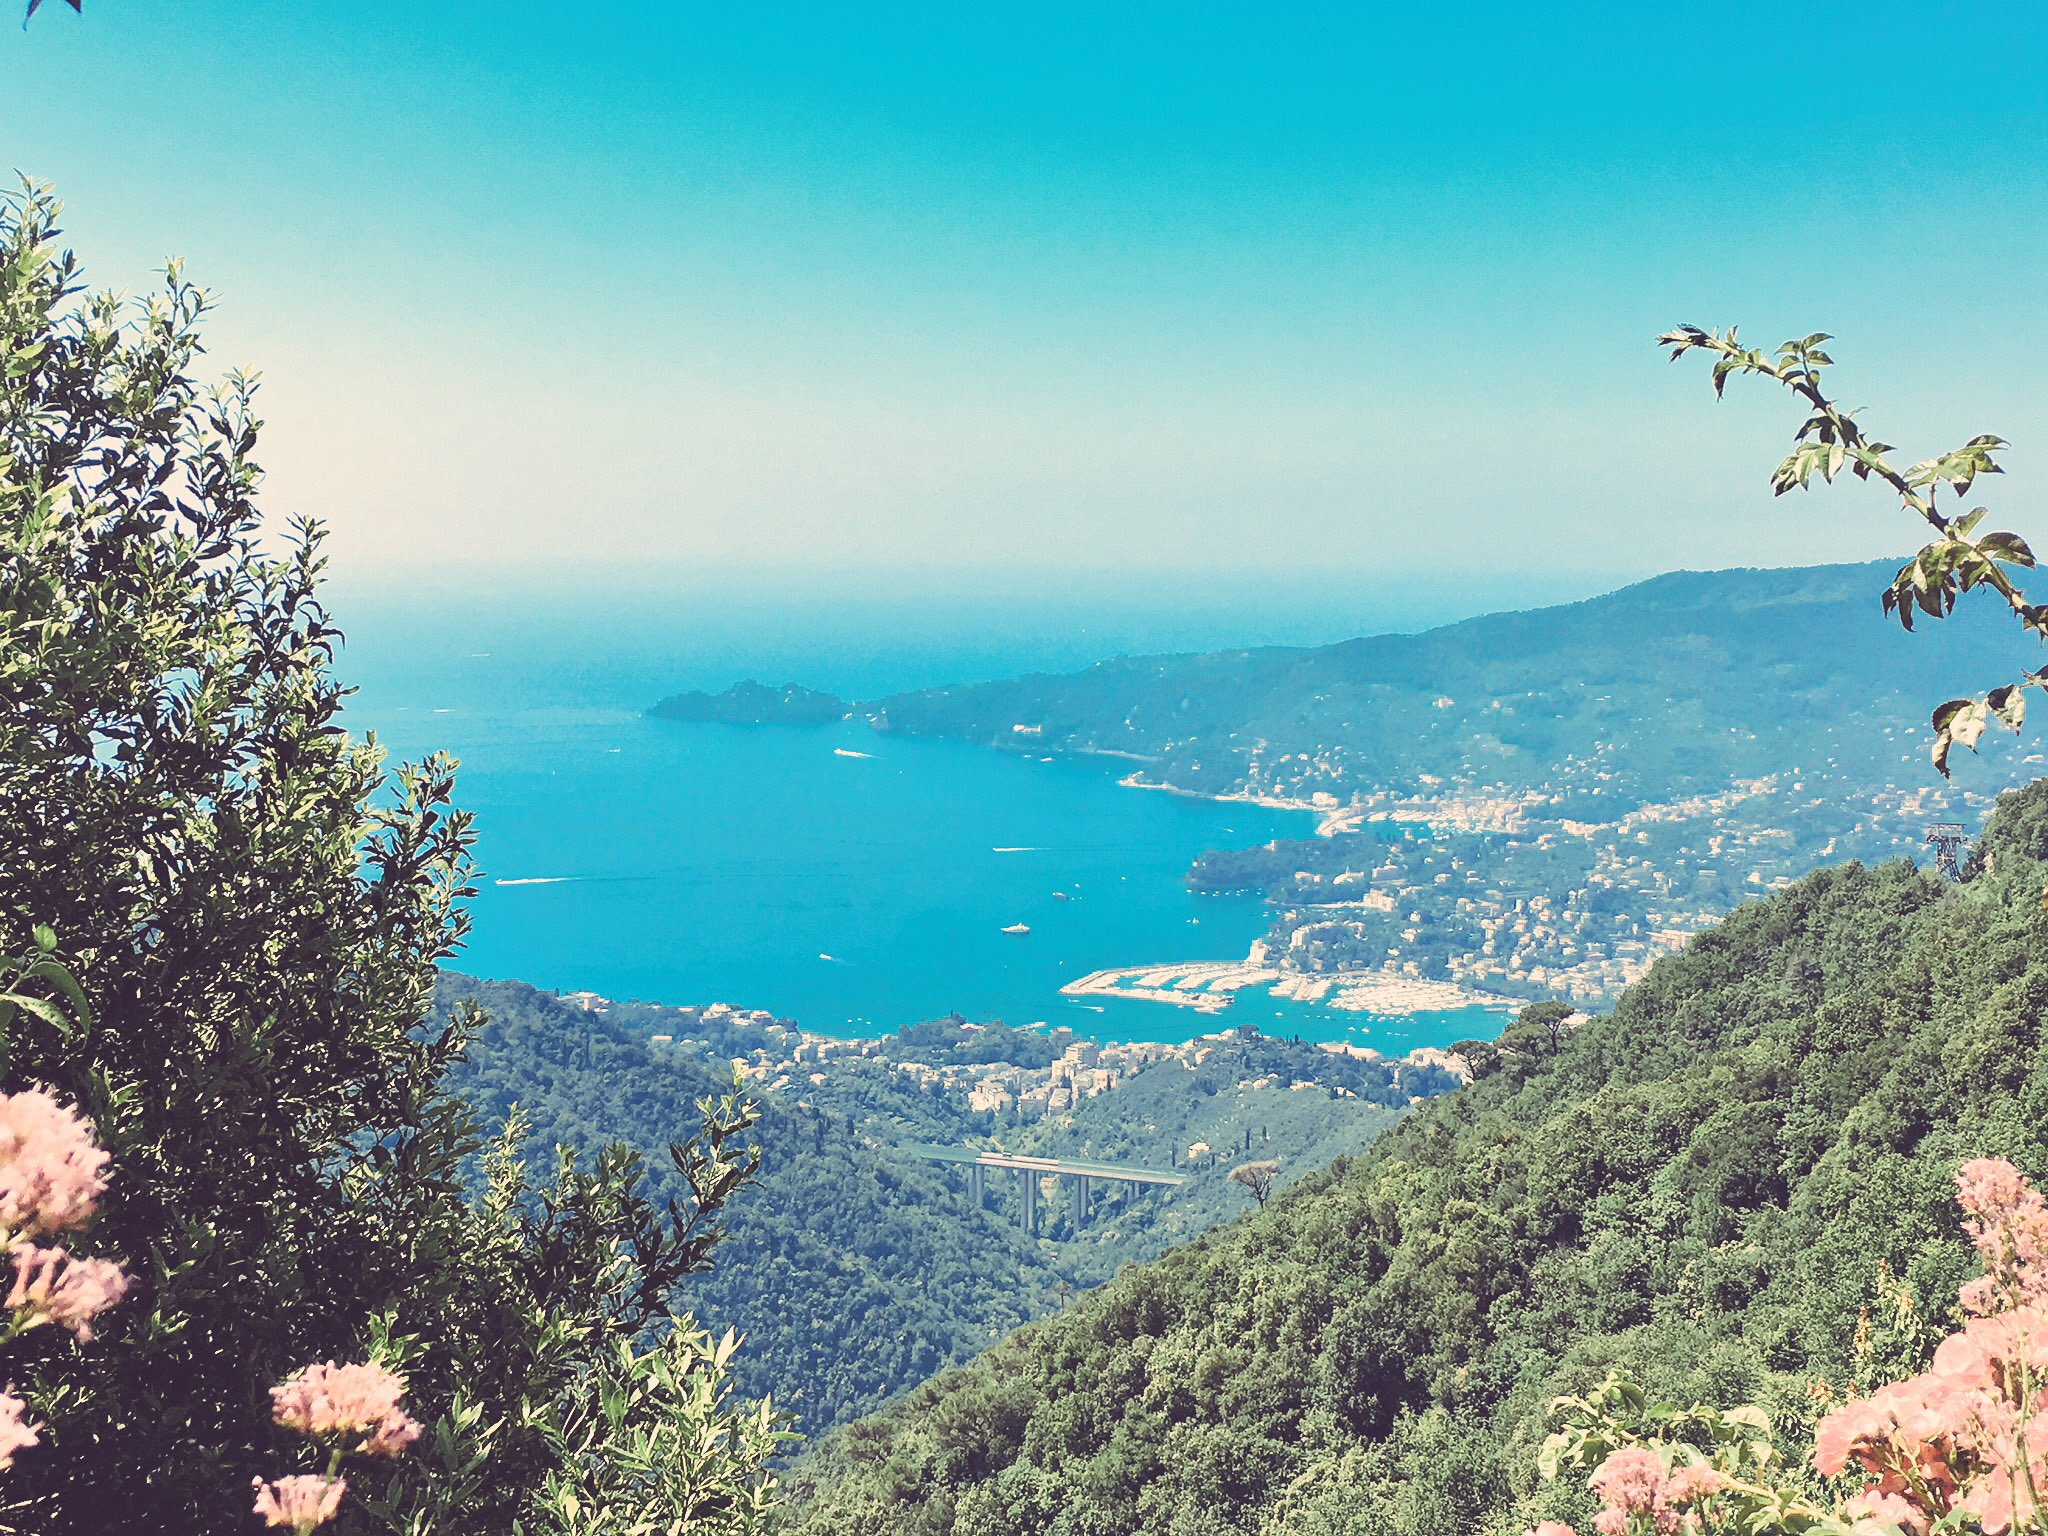 View from the Santuario di Montallegro, Rapallo, Italy